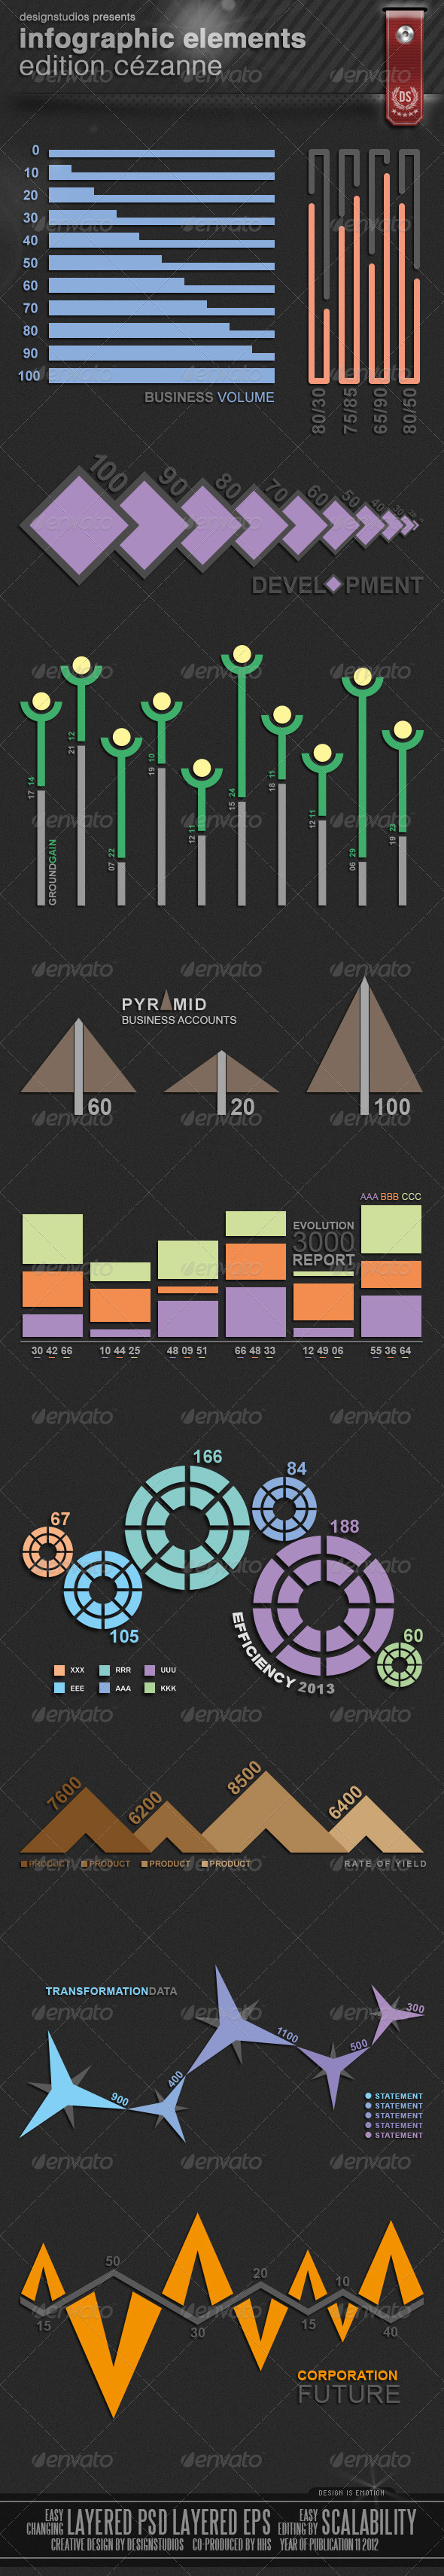 GraphicRiver Infographic Elements Edition Cezanne 3366484